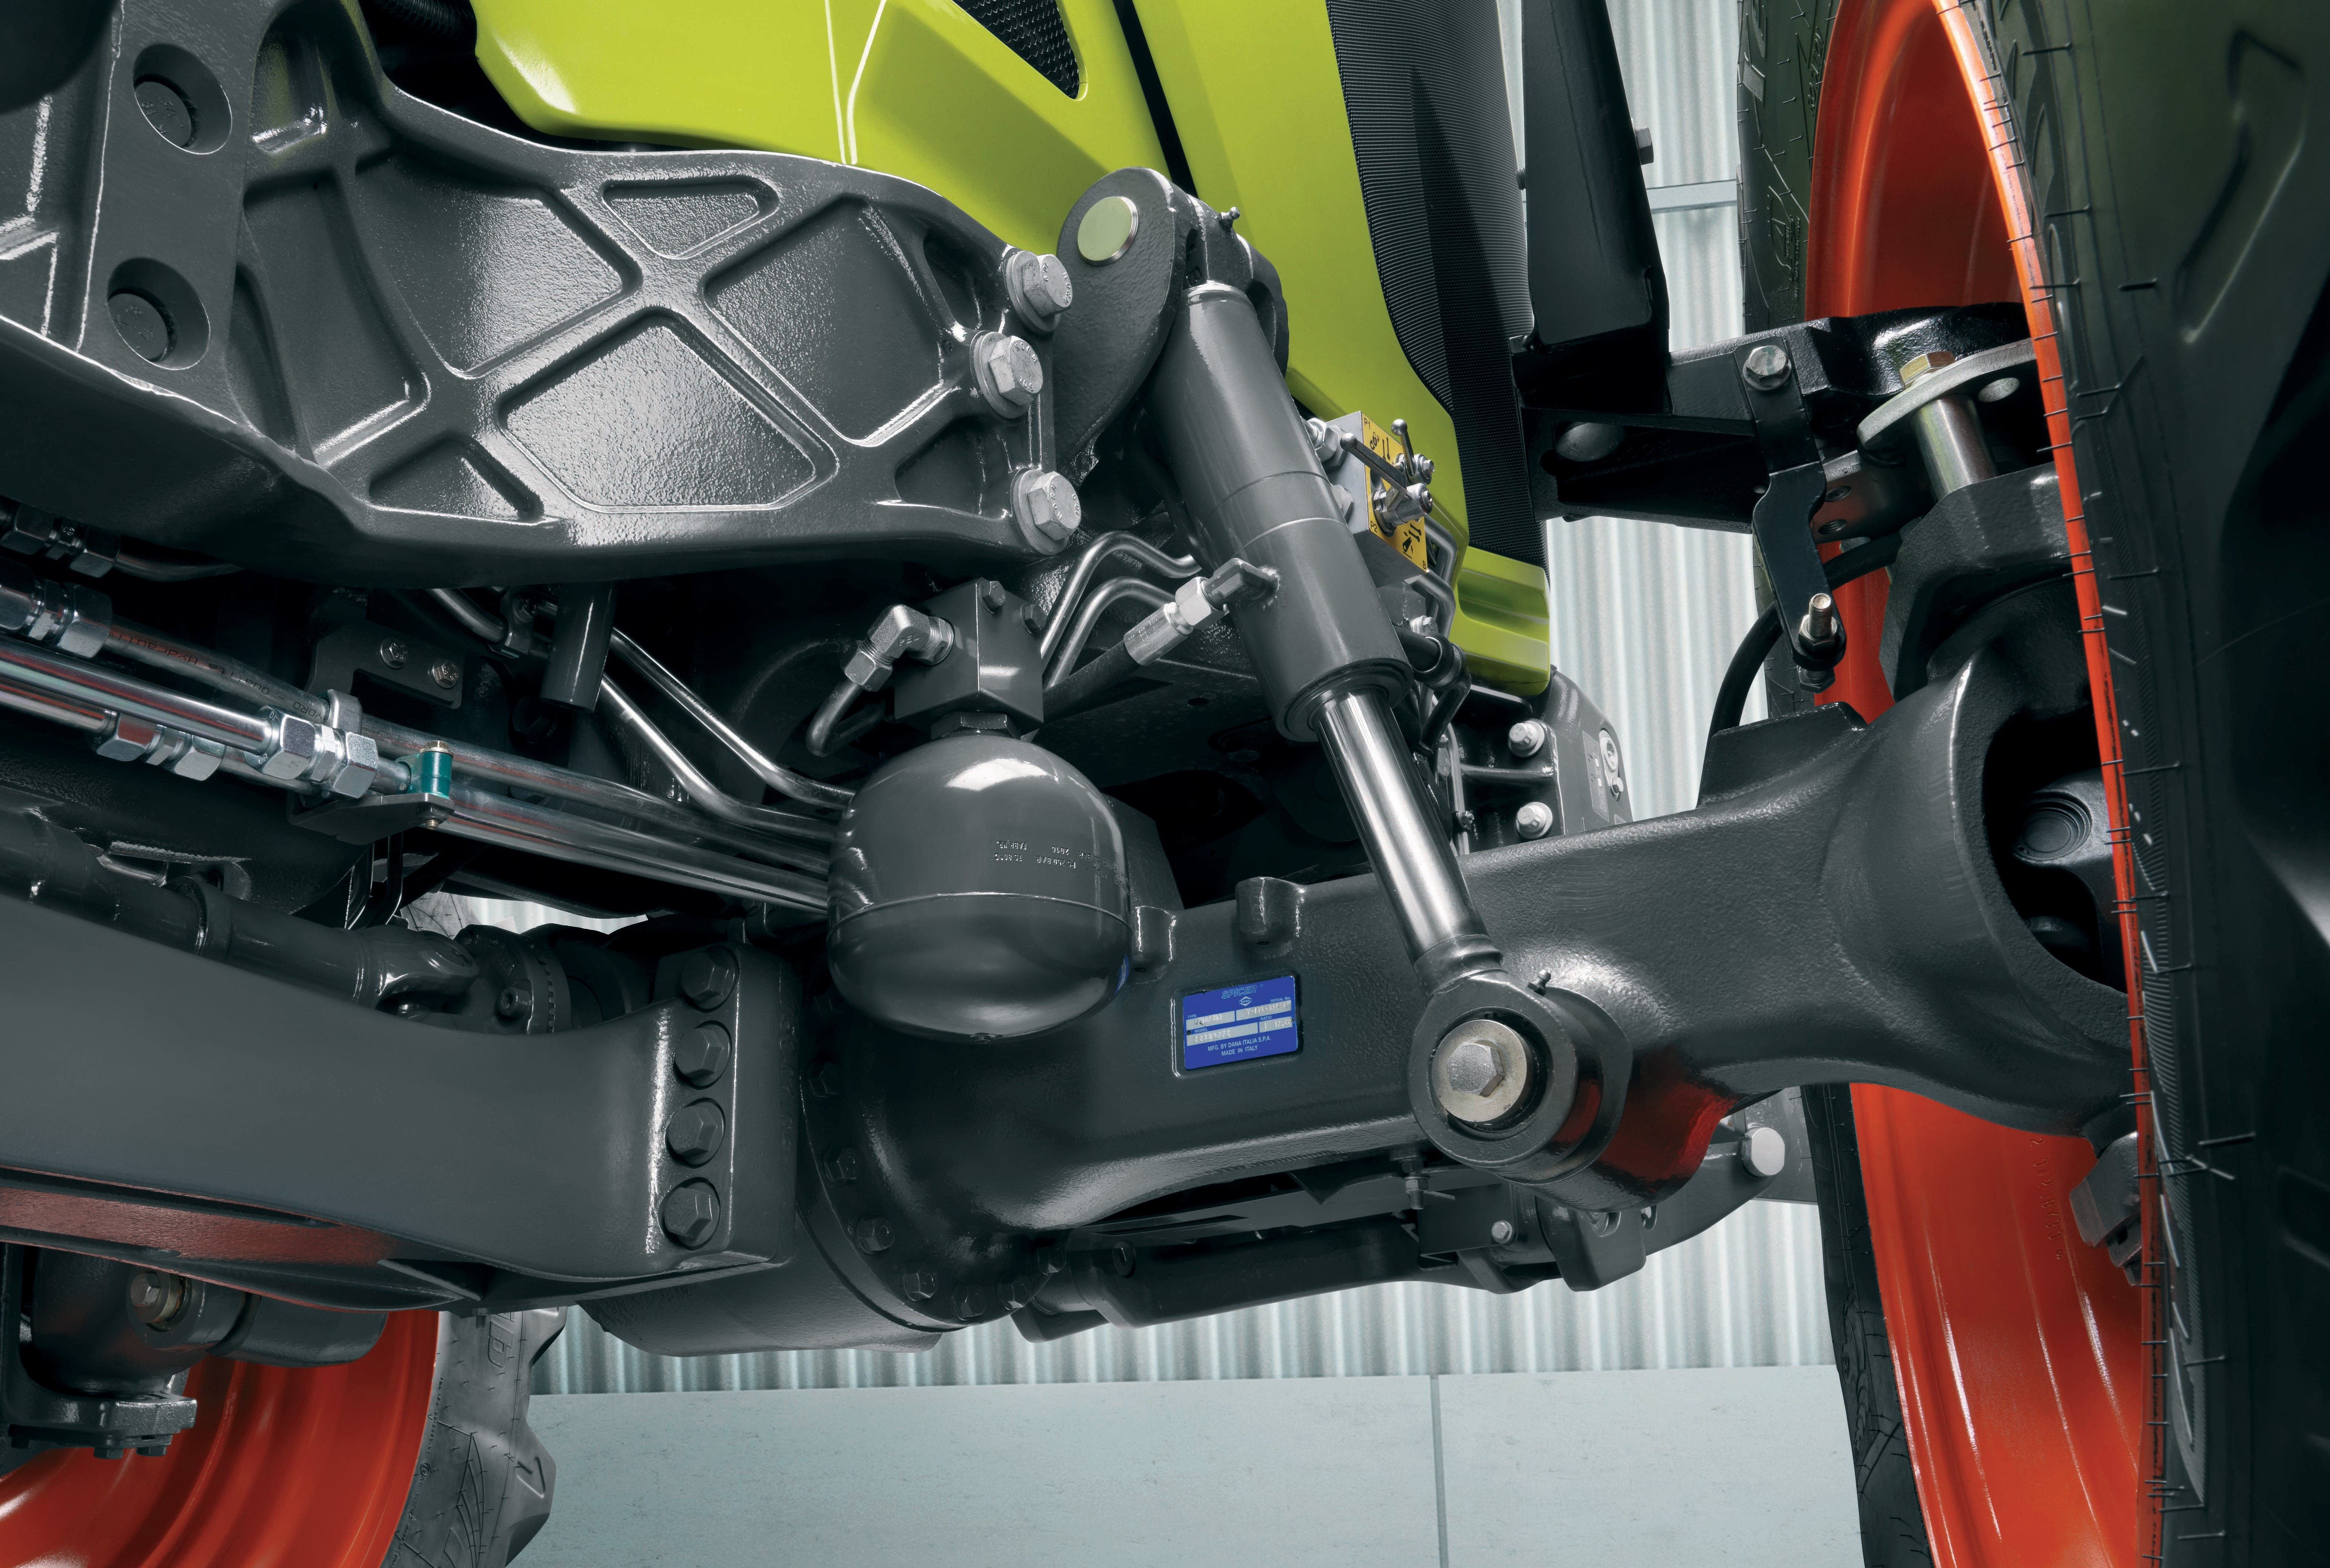 Tractor Front Suspension : Pics claas updates its arion and series tractors